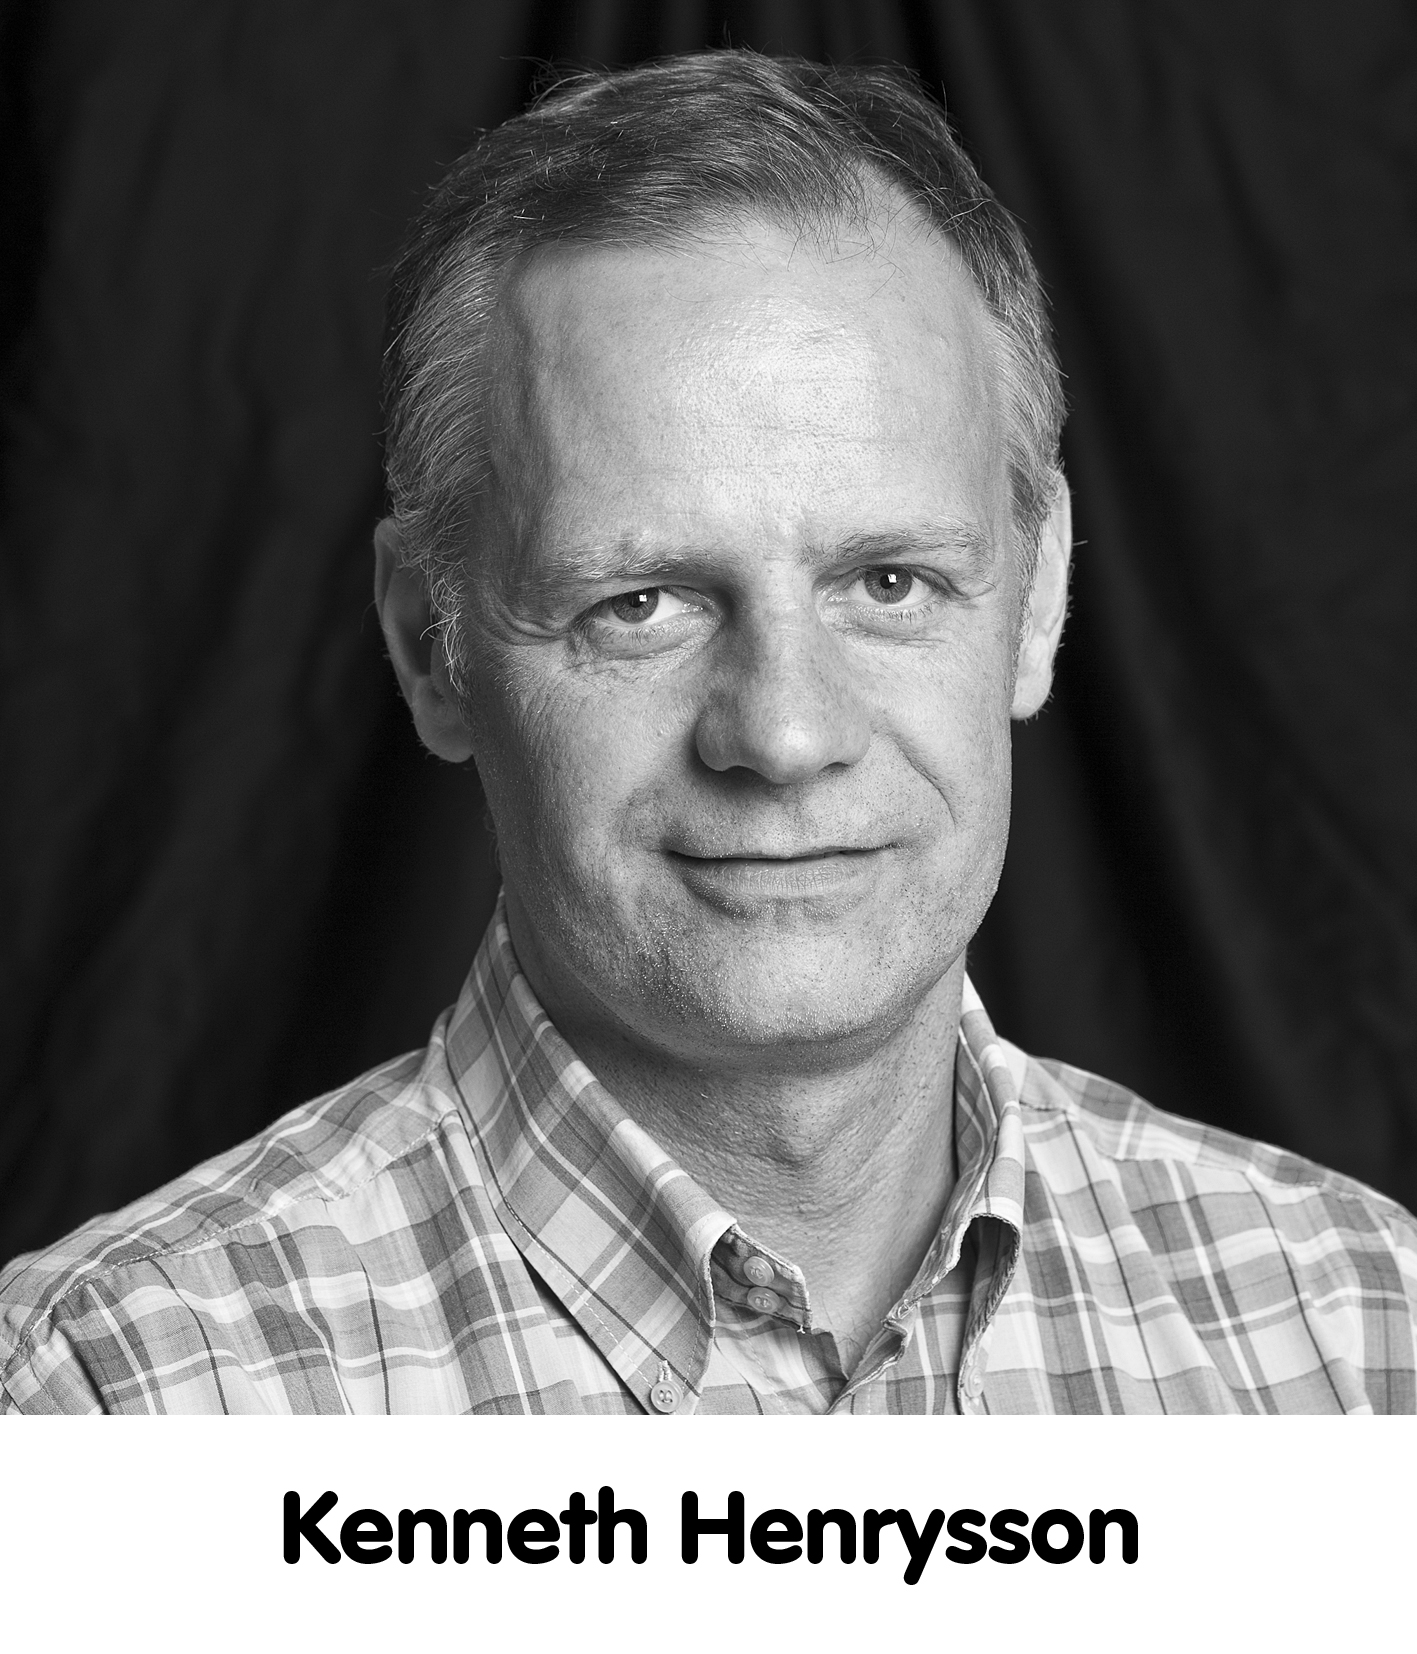 Kenneth Henrysson